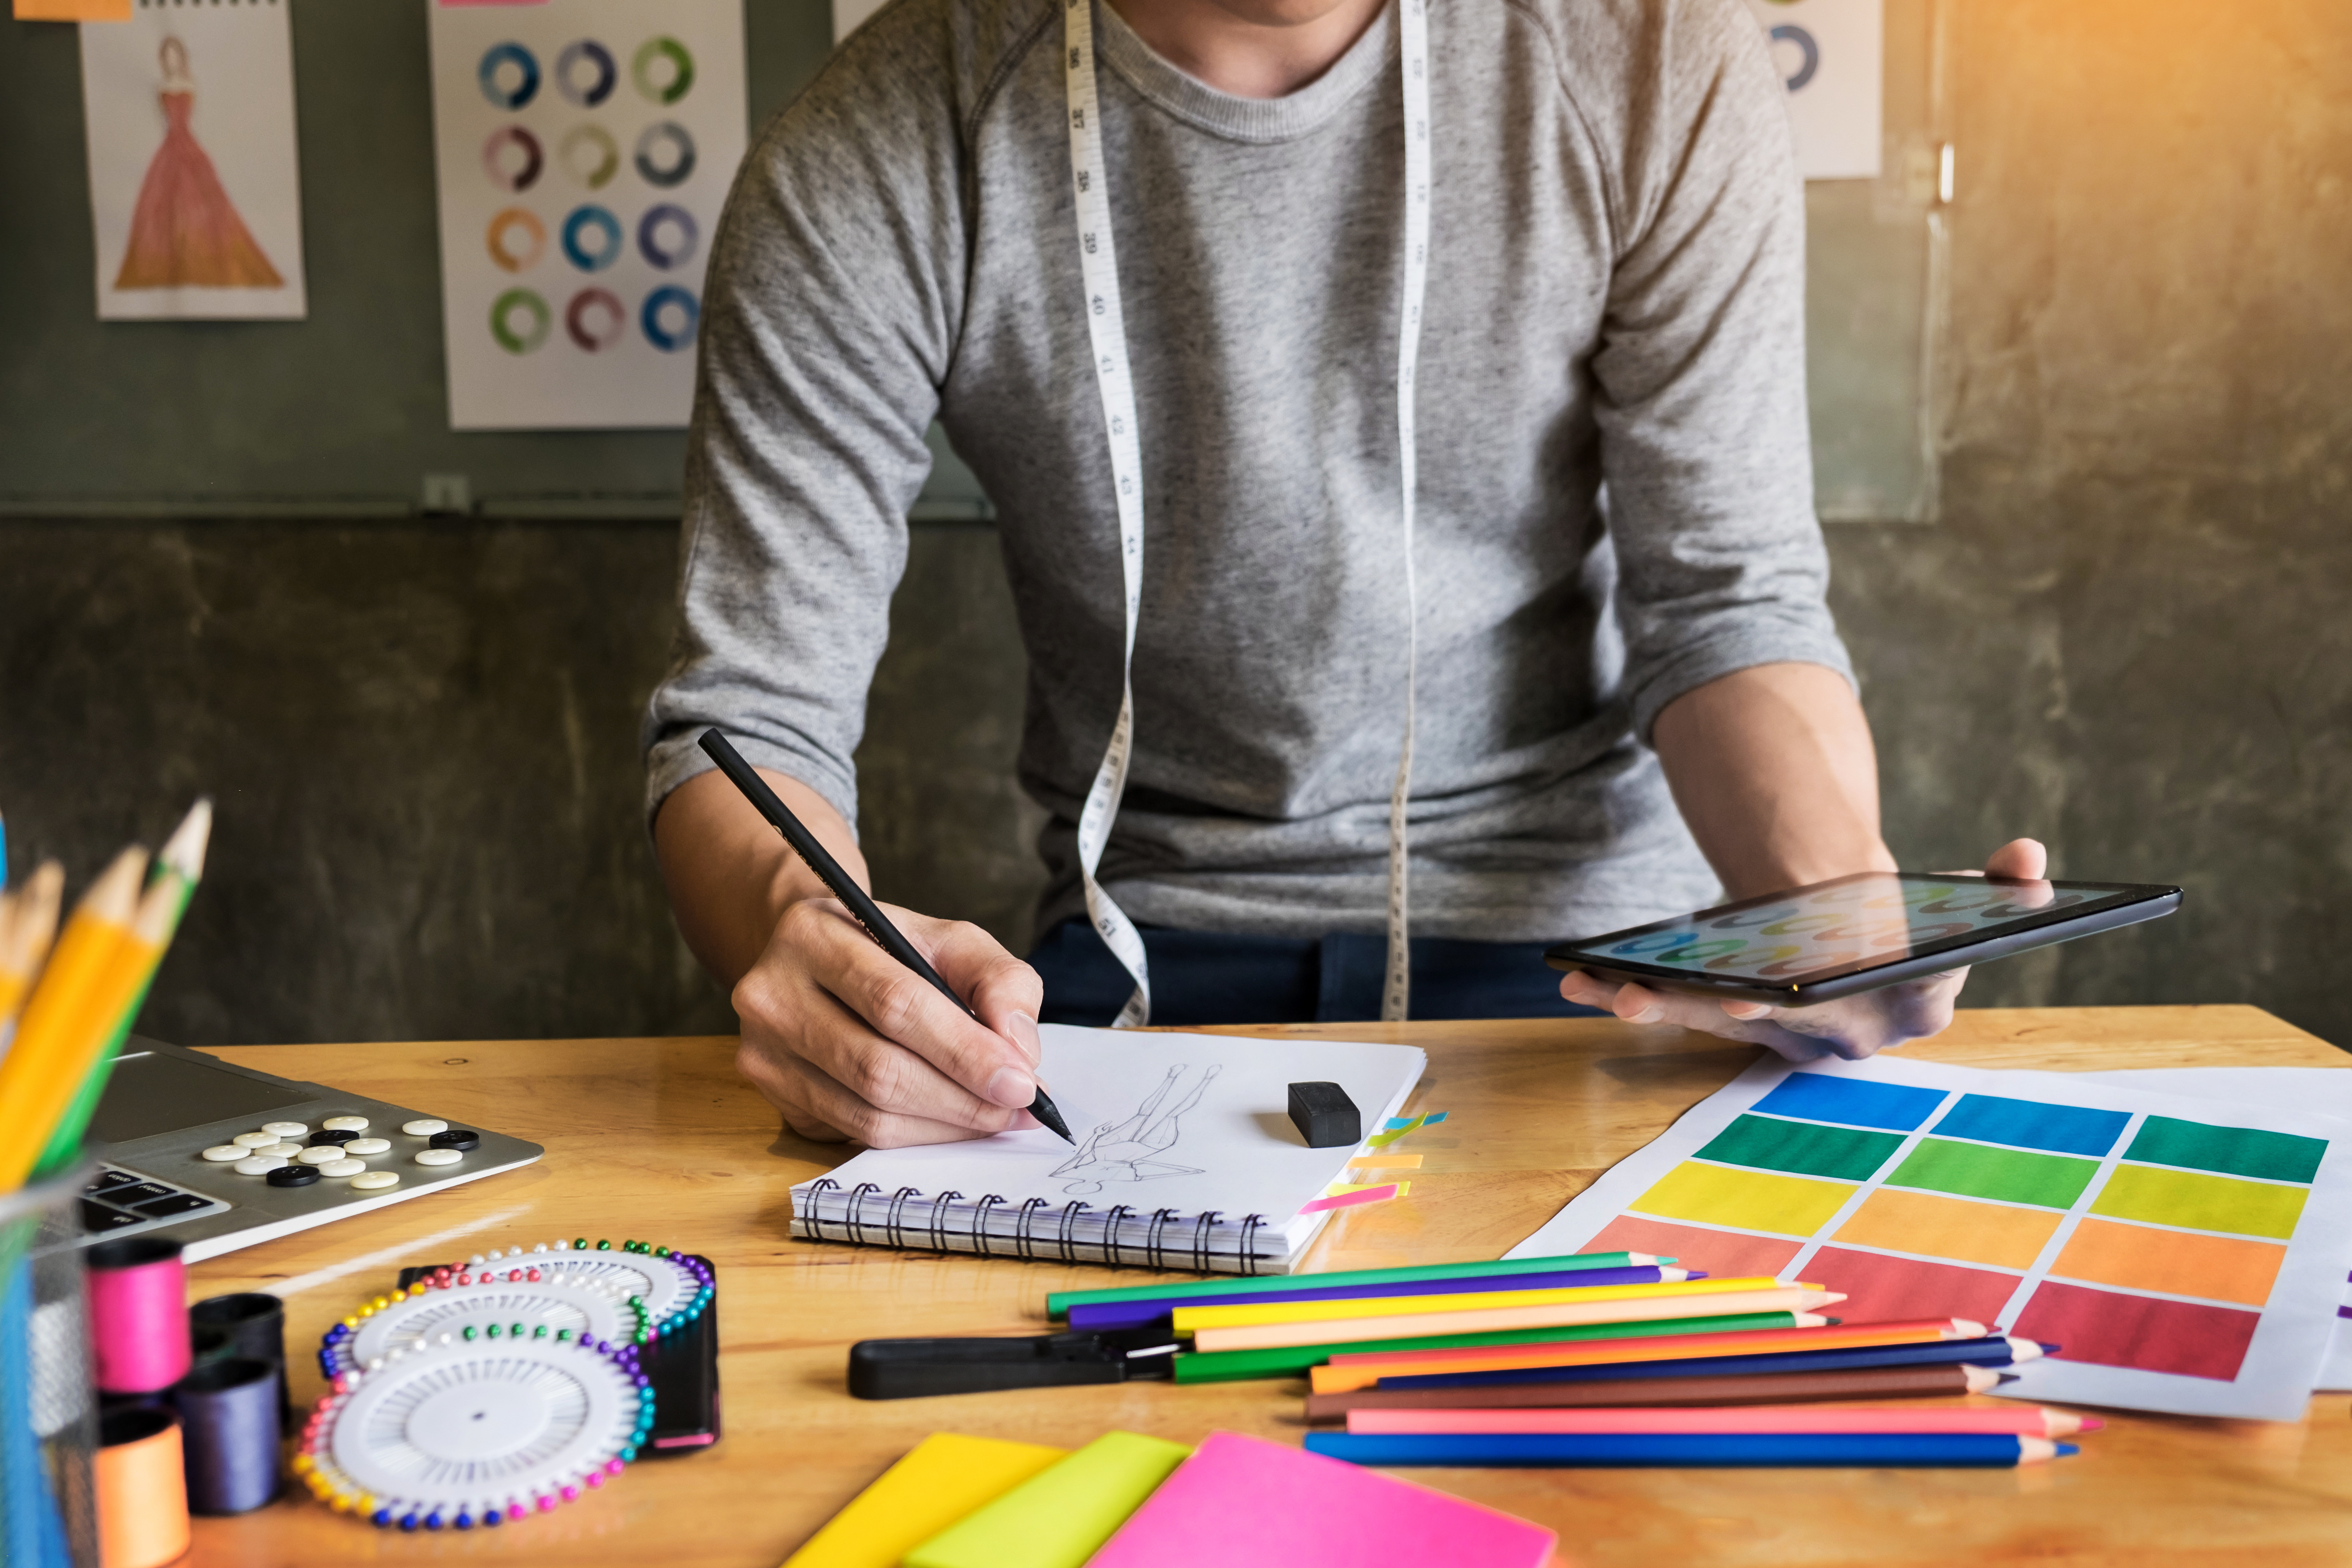 What should I include in my fashion design portfolio? The Ultimate Guide to Being a Freelance Fashion Designer by Sew Heidi